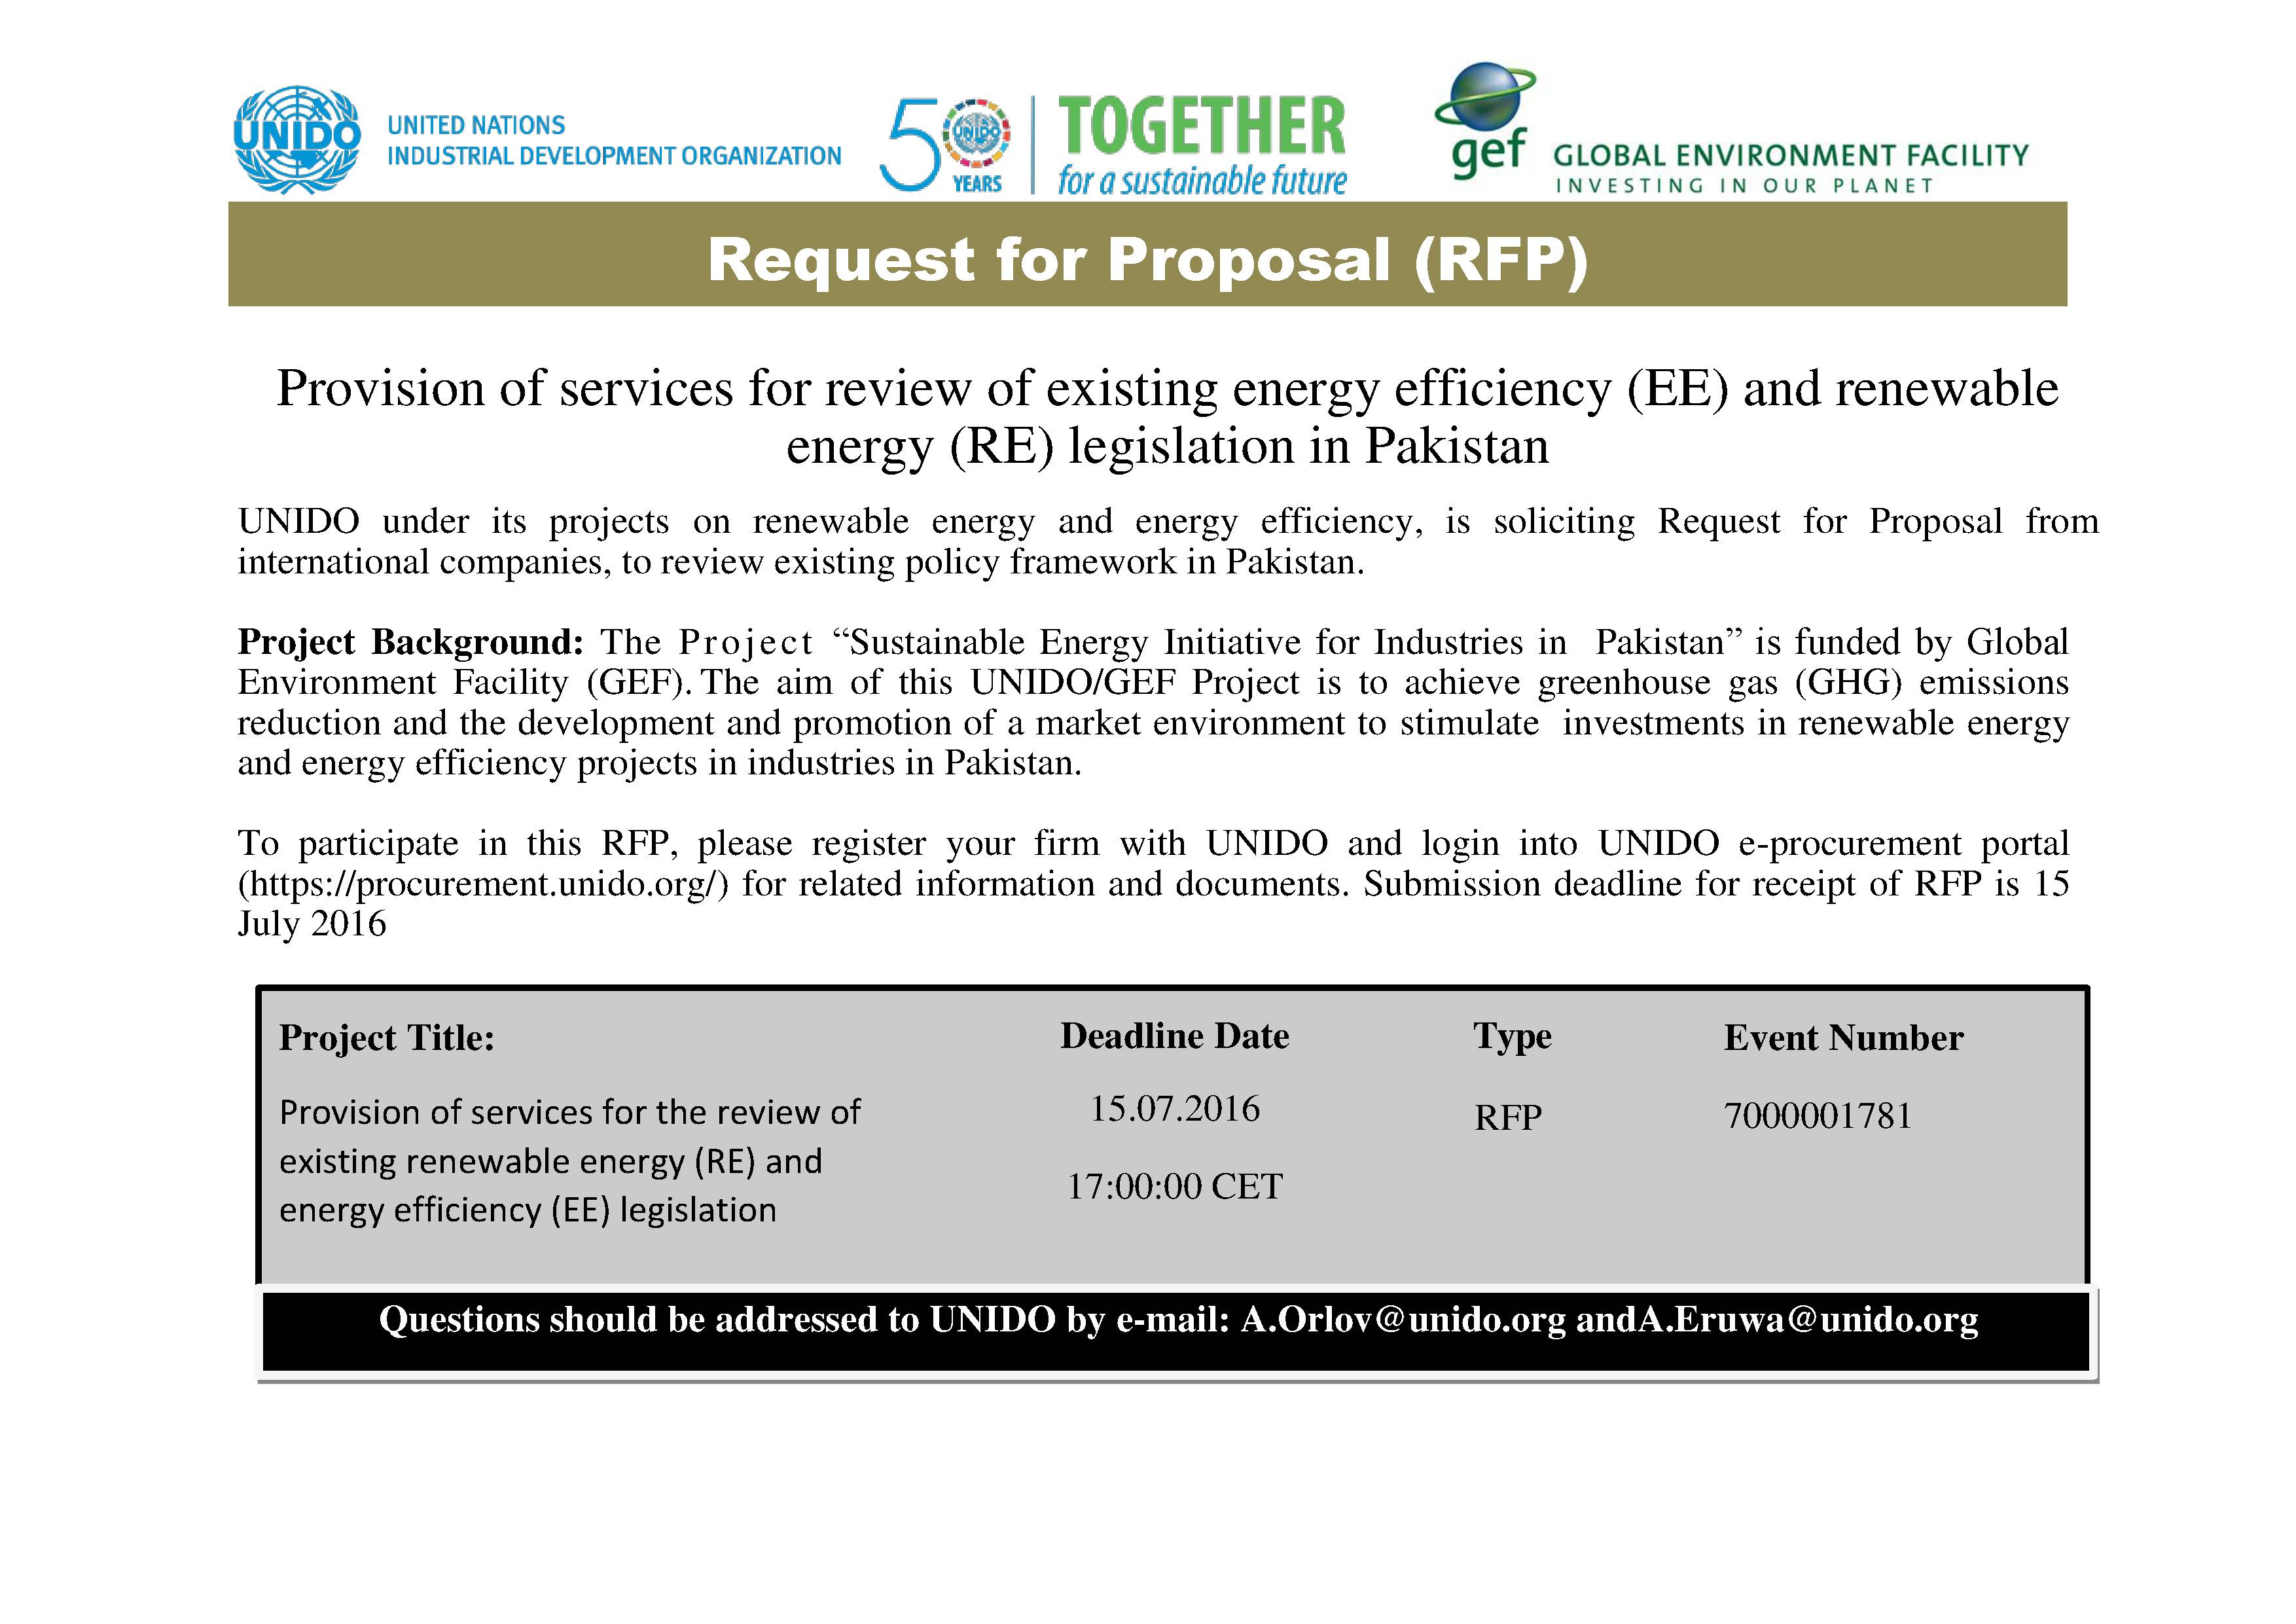 RFP for provision of services for the review of existing renewable